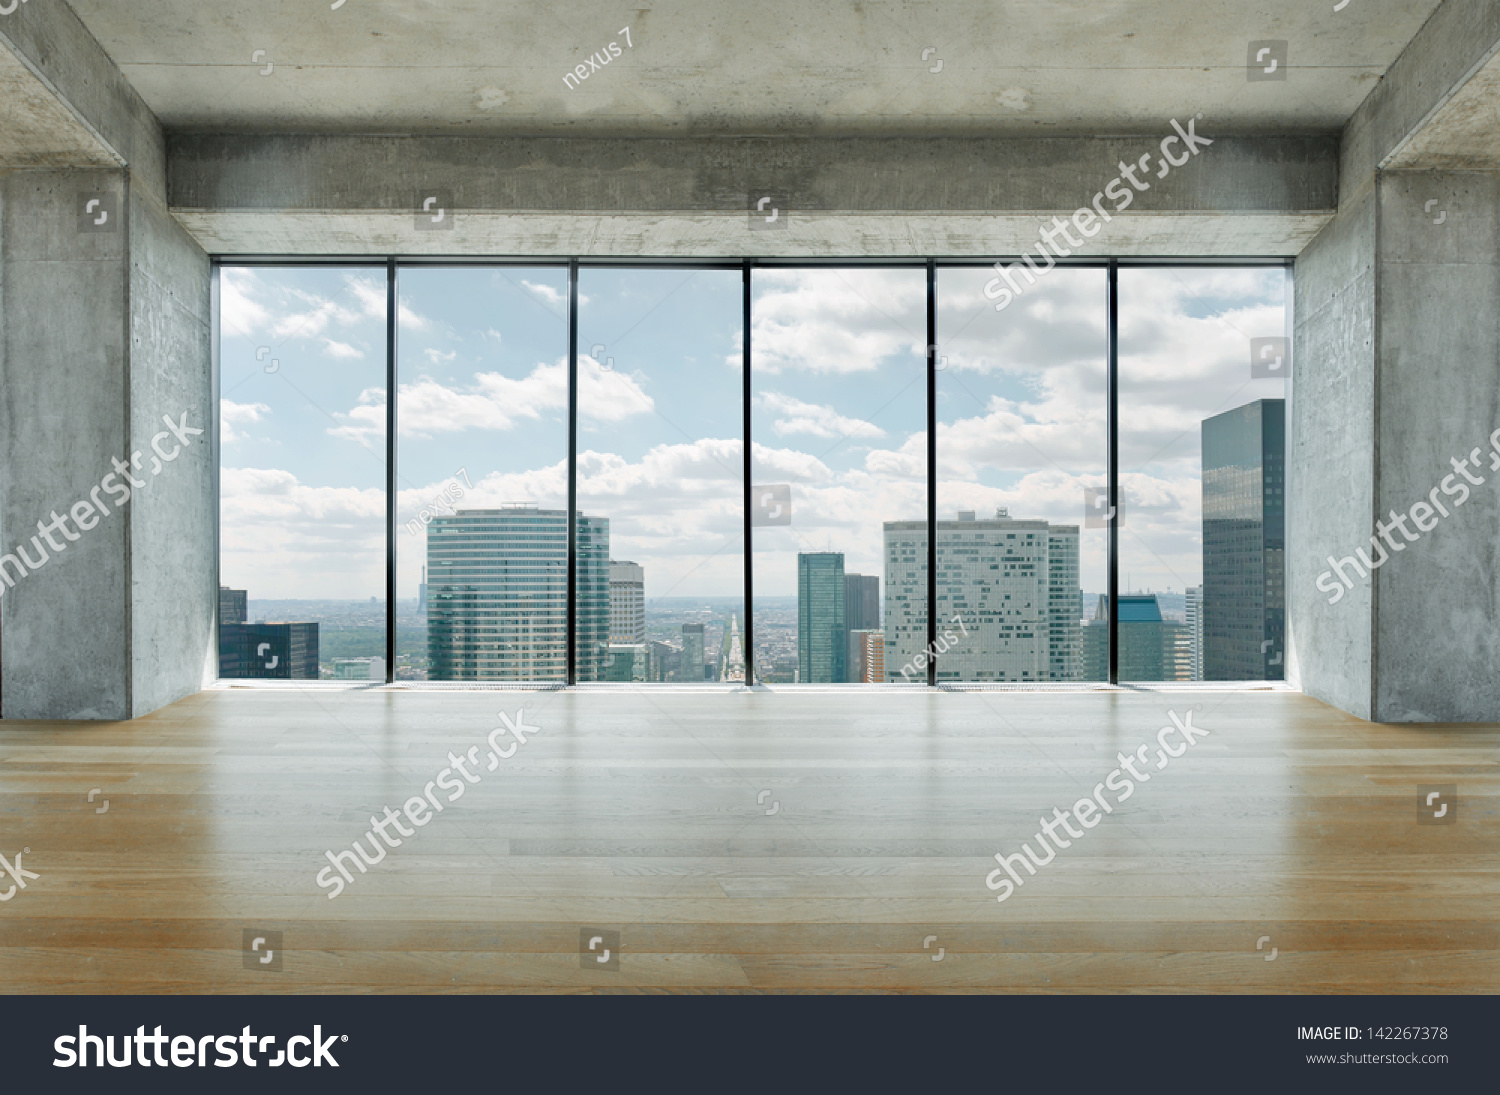 Related Keywords Suggestions For Large Windows